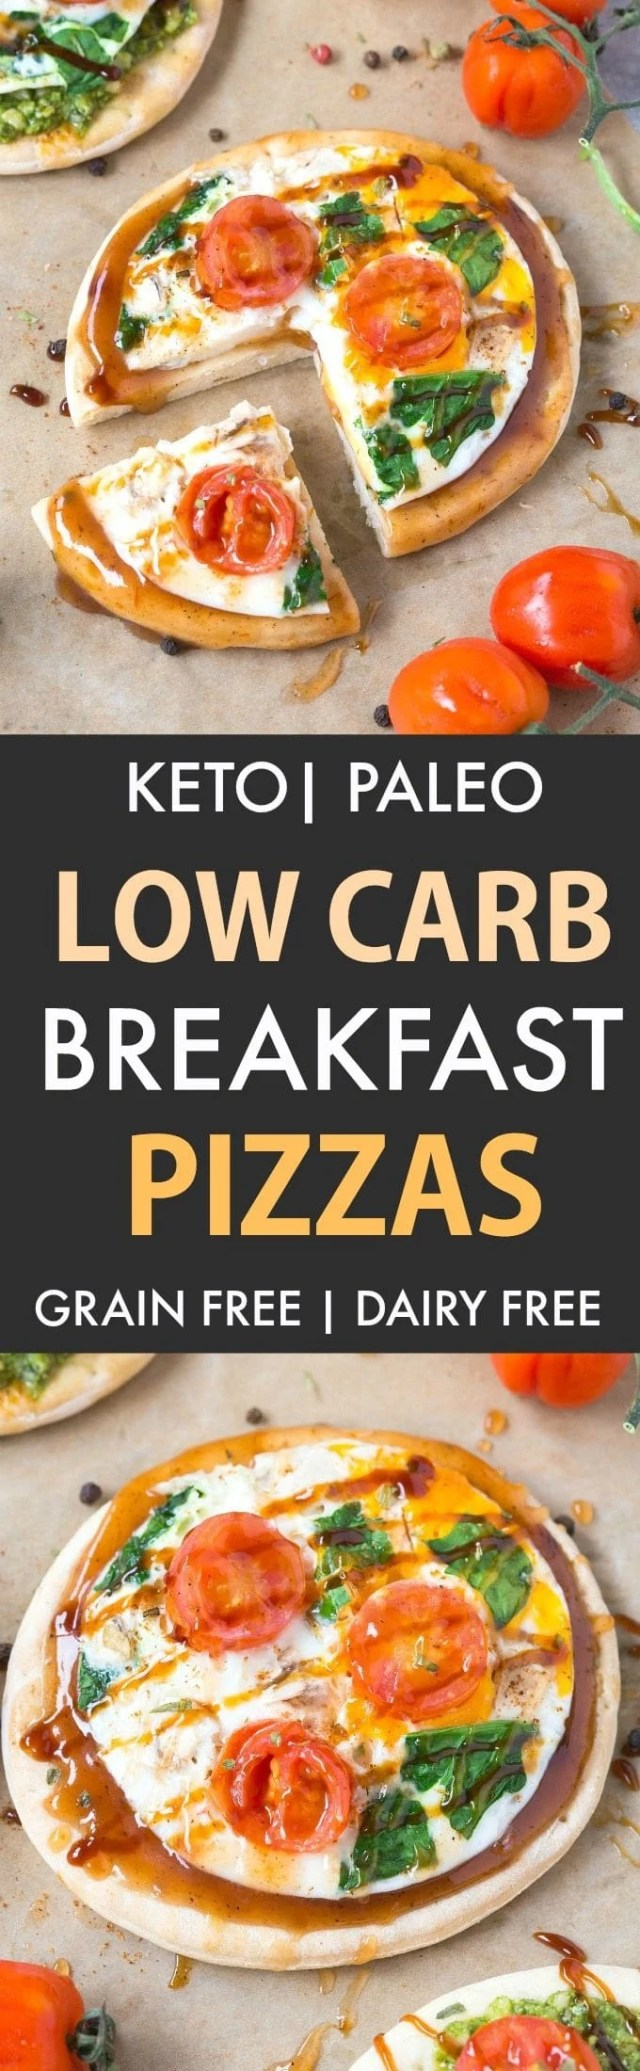 Keto Breakfast Pizzas (Low Carb, Paleo, Gluten Free, Grain Free)- Easy stovetop pizza crusts recipe packed with protein and perfect to load with your favorite toppings- Freezer friendly too!   #keto #ketopizza #paleopizza #grainfreepizza #lowcarbpizza   Recipe on thebigmansworld.com